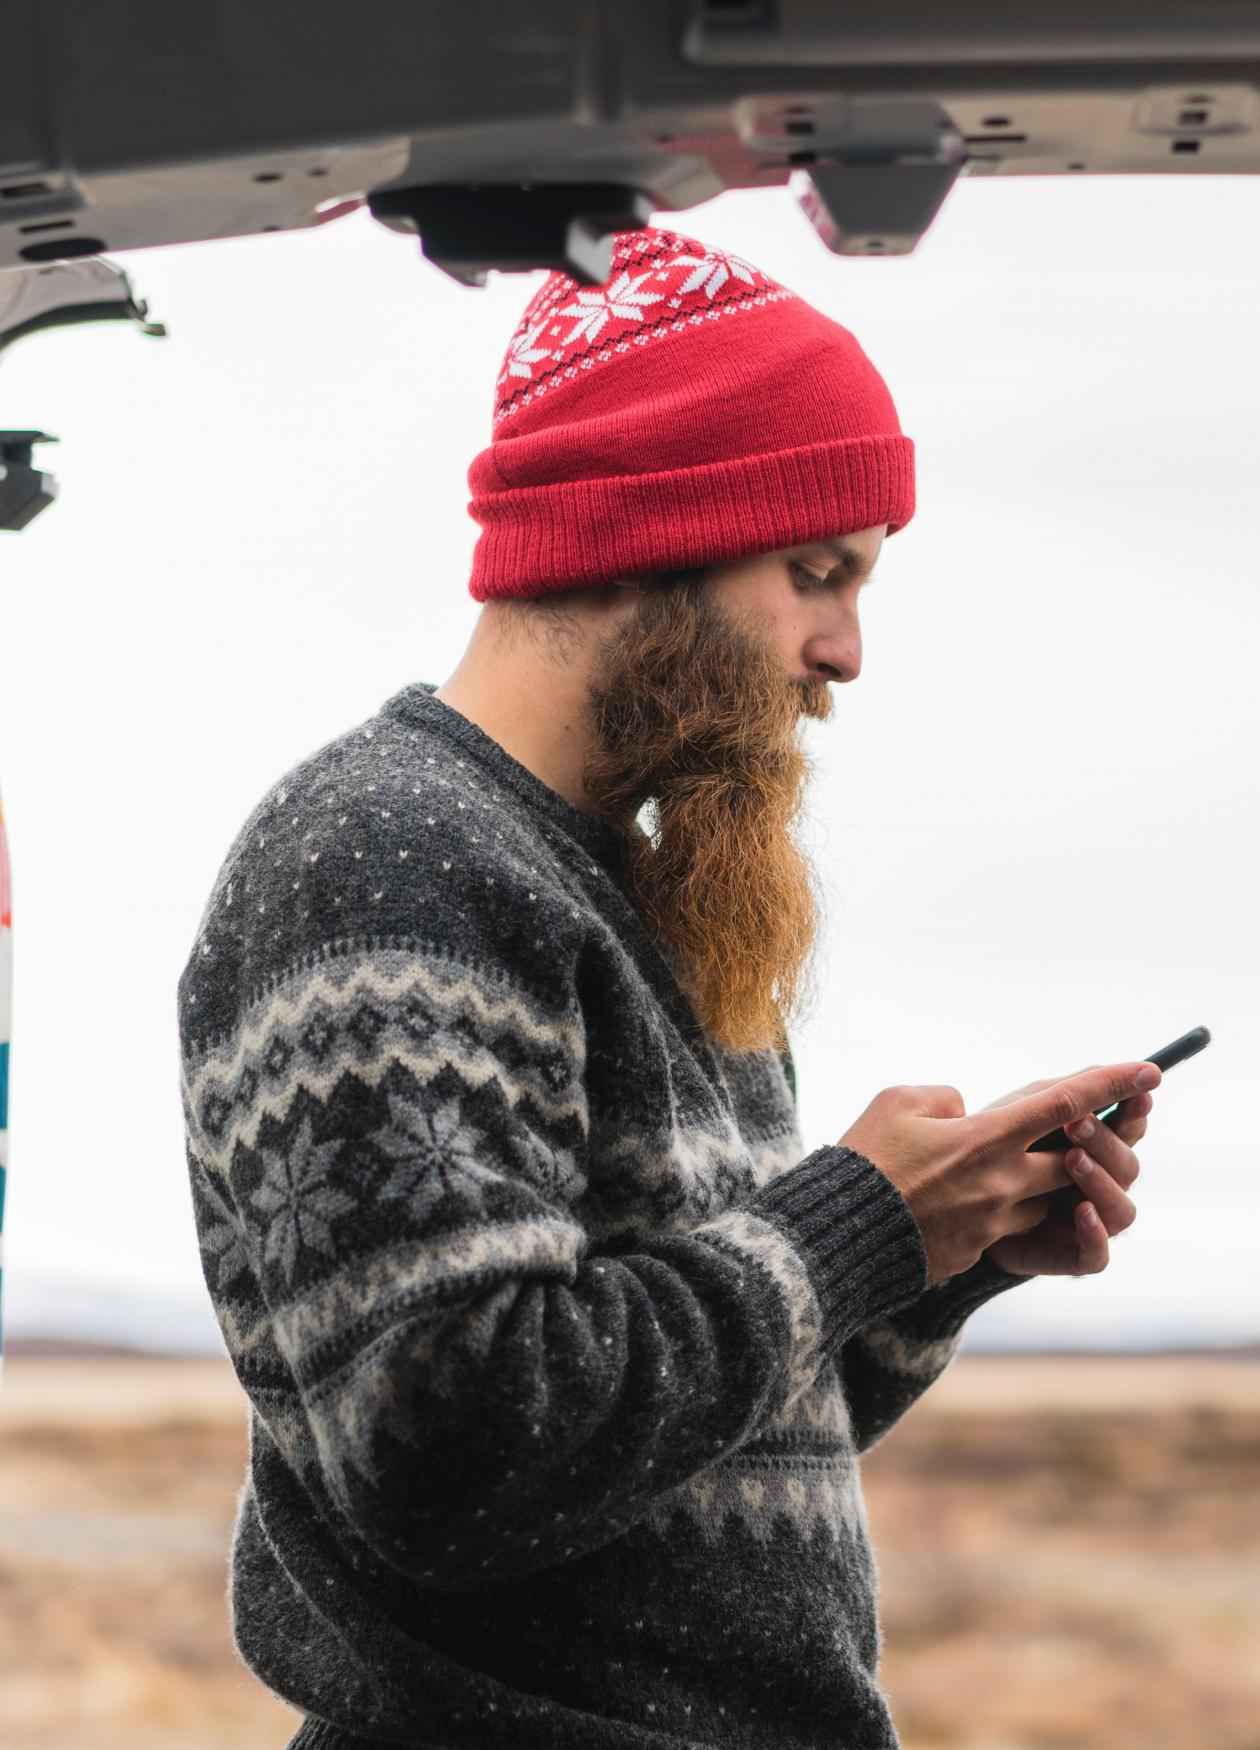 Hipster with his camper van and cell phone.